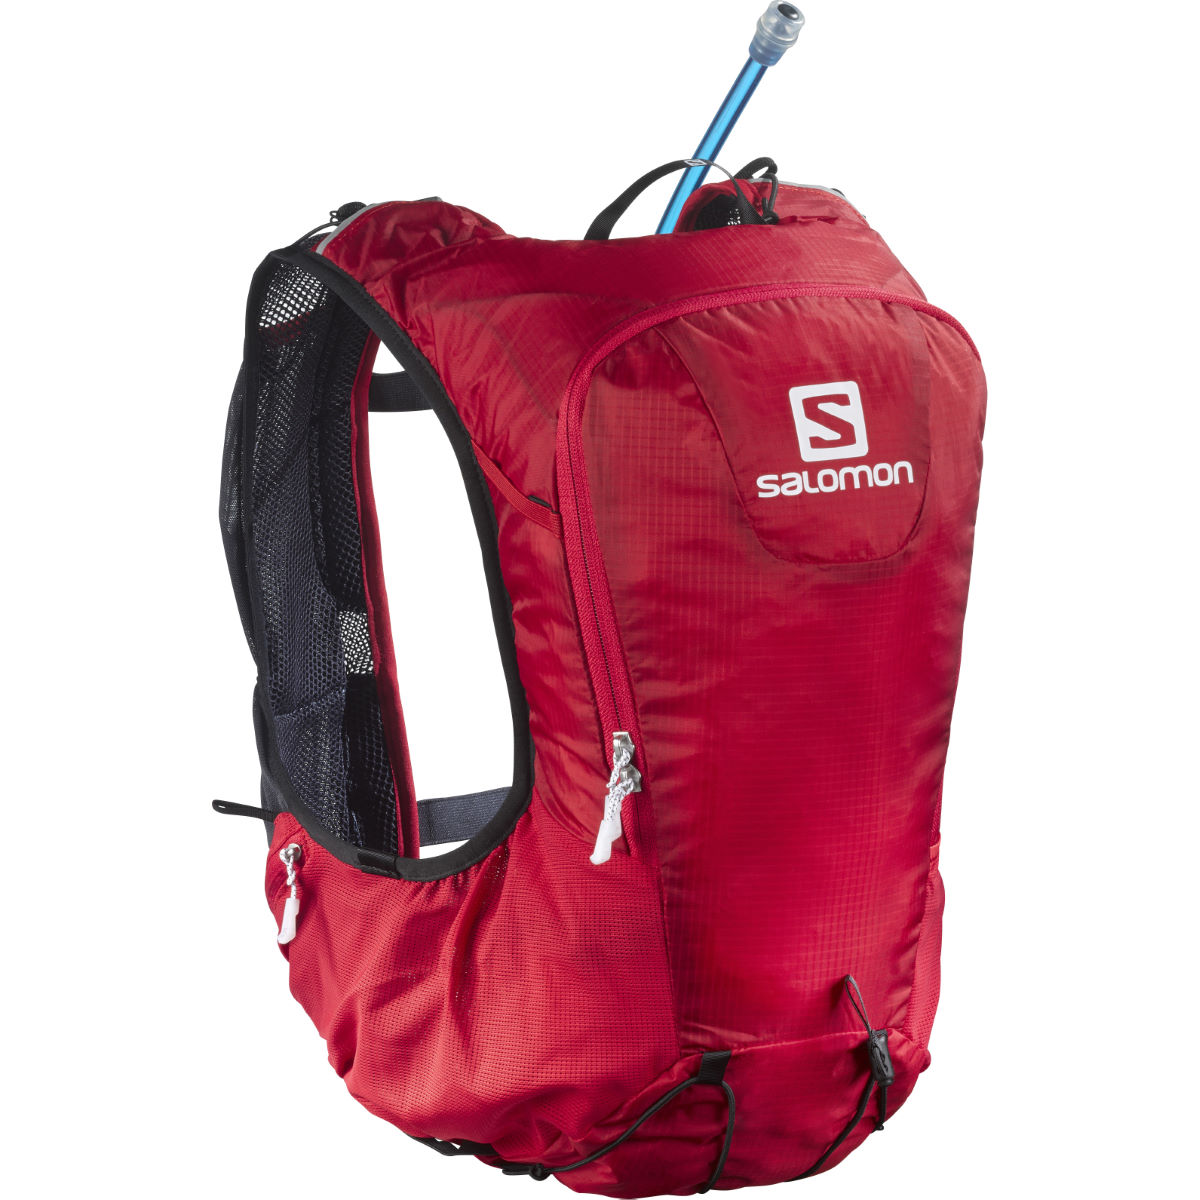 Sac d'hydratation Salomon Skin Pro 10 (rouge/rouge) - One Size Red/Red Sacs d'hydratation